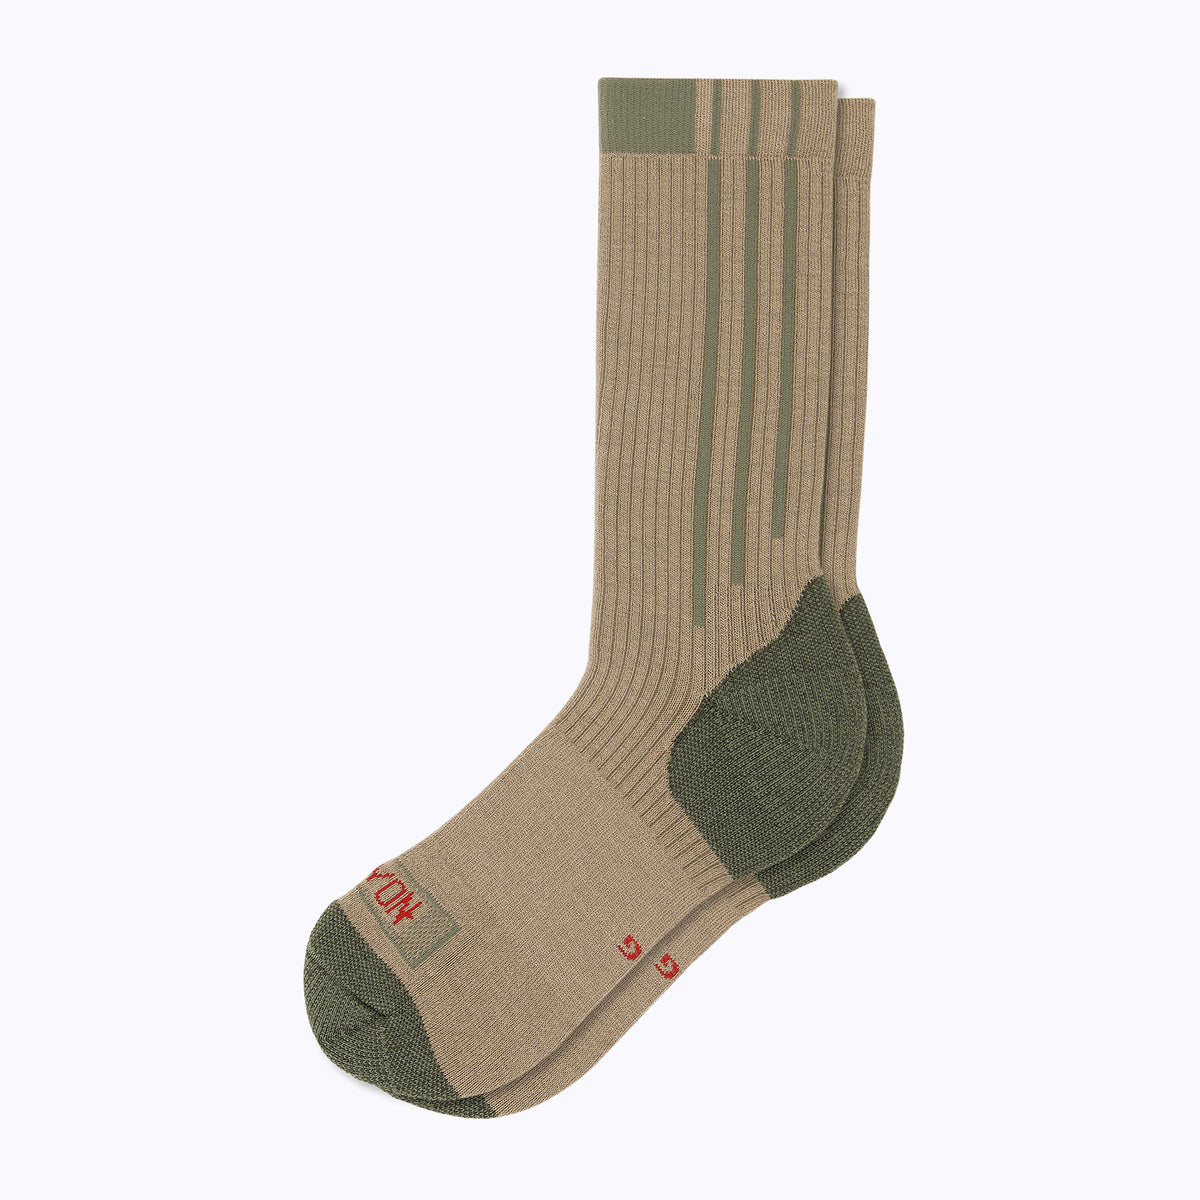 Americana Men's Crew Socks - Sand + OD Green by Canyon Socks